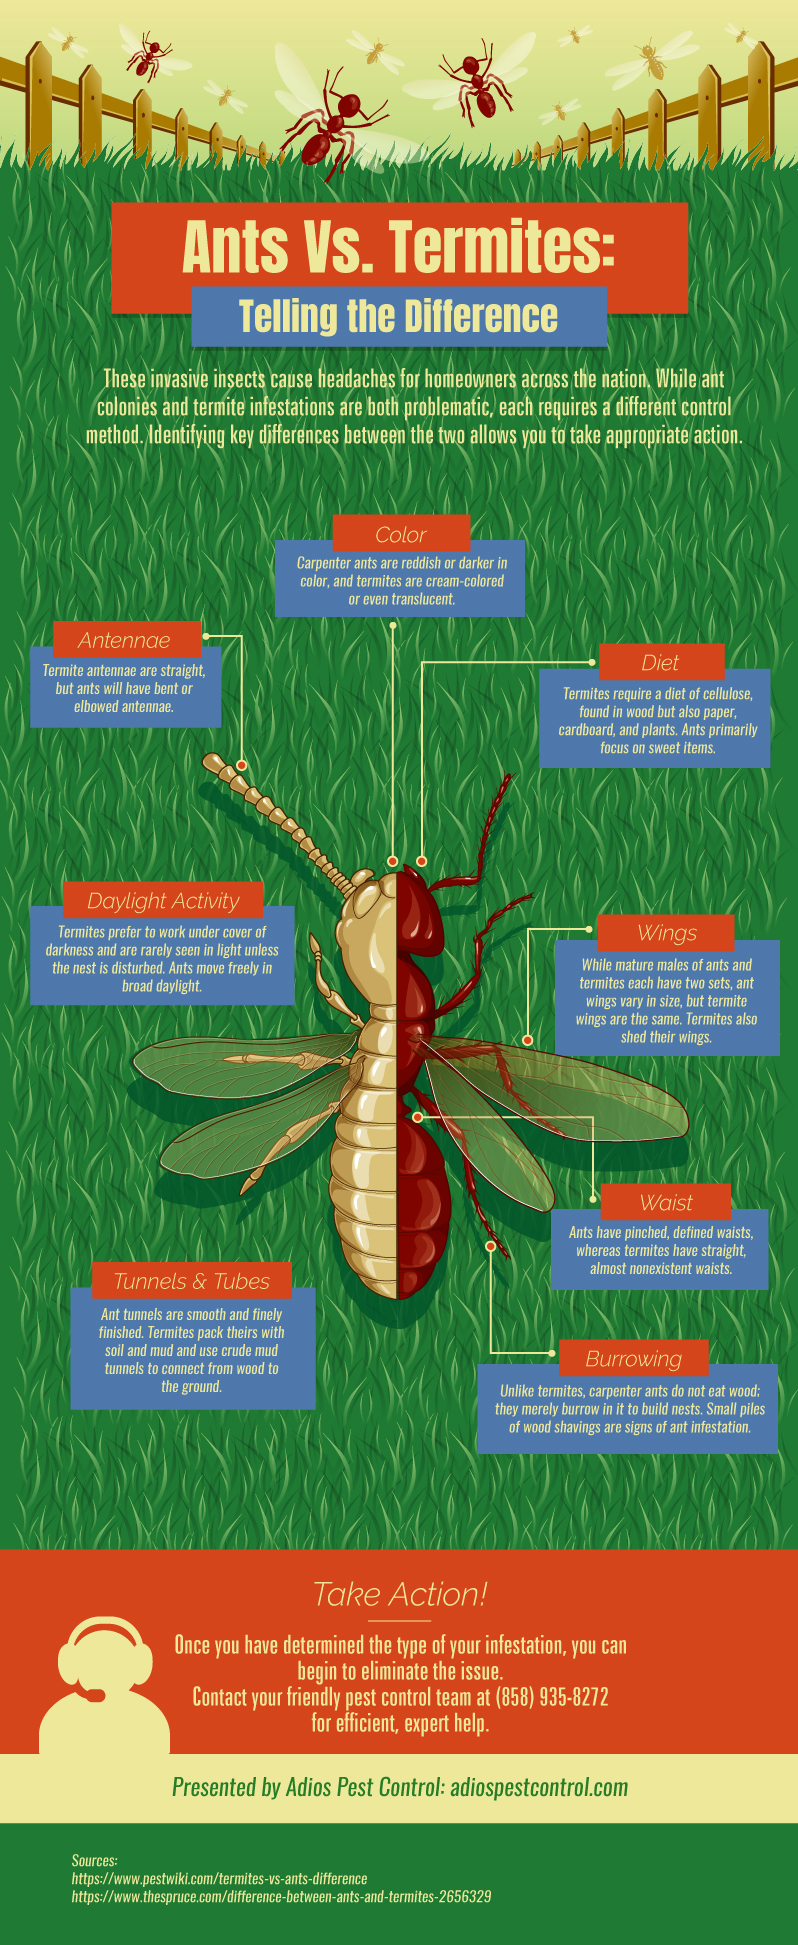 Infographic displaying the differences between ants and termites.